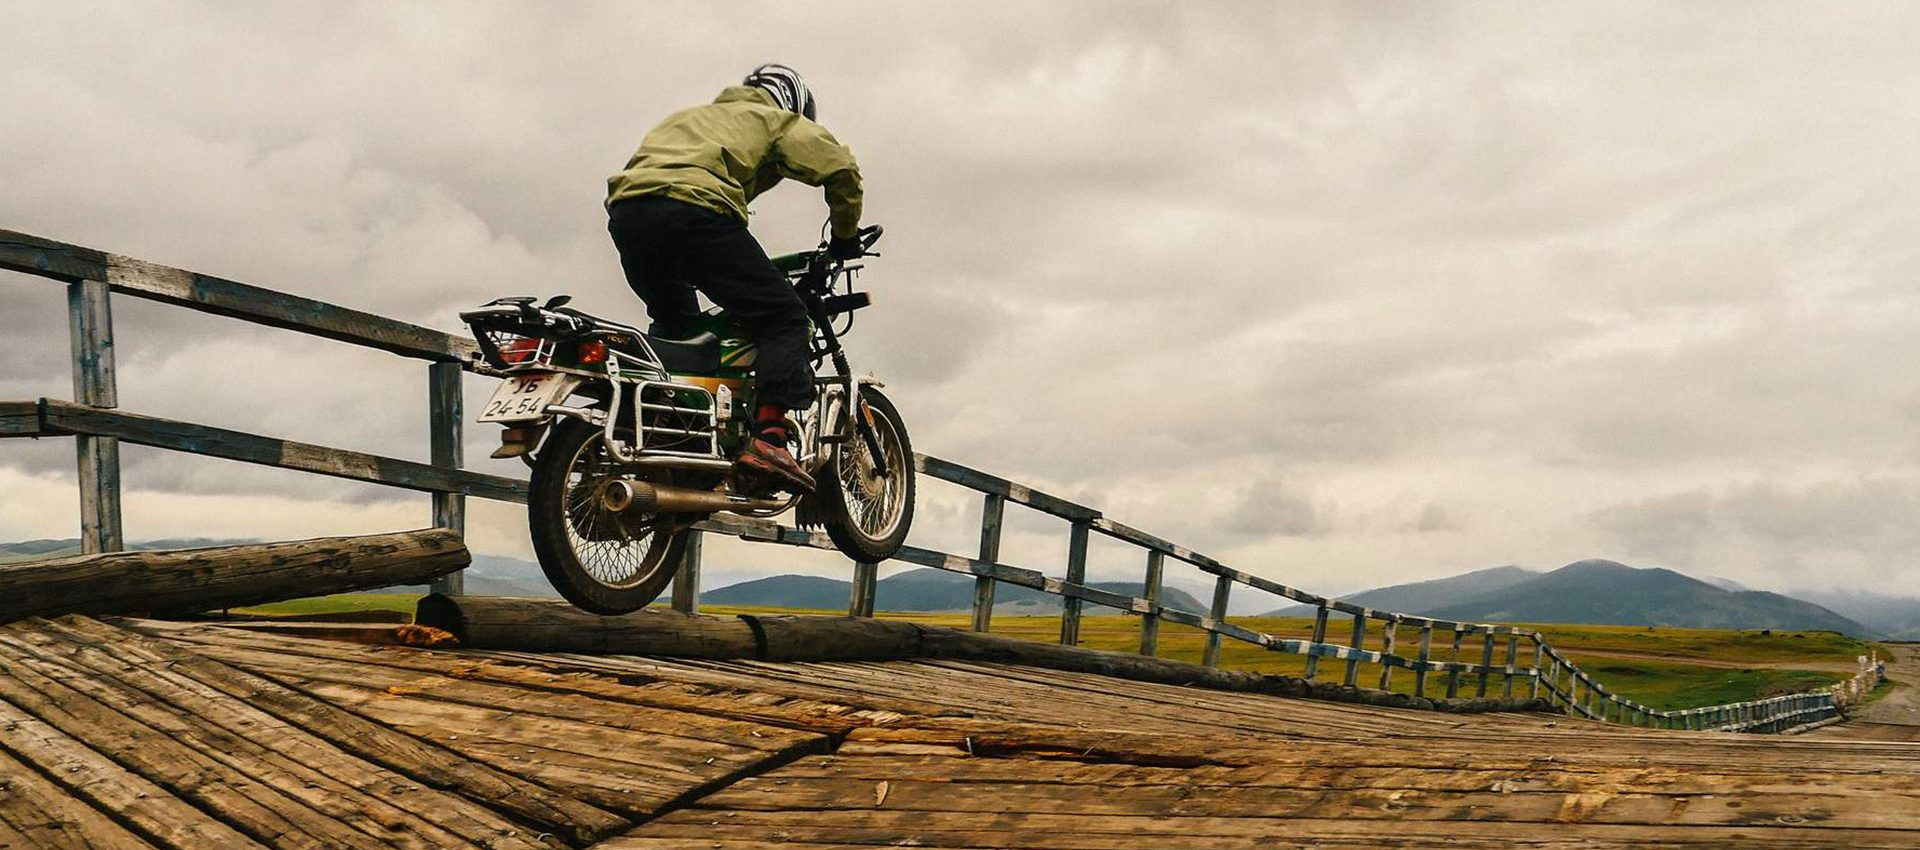 Our super lite enduro motorcycles ride through anything that comes our way.